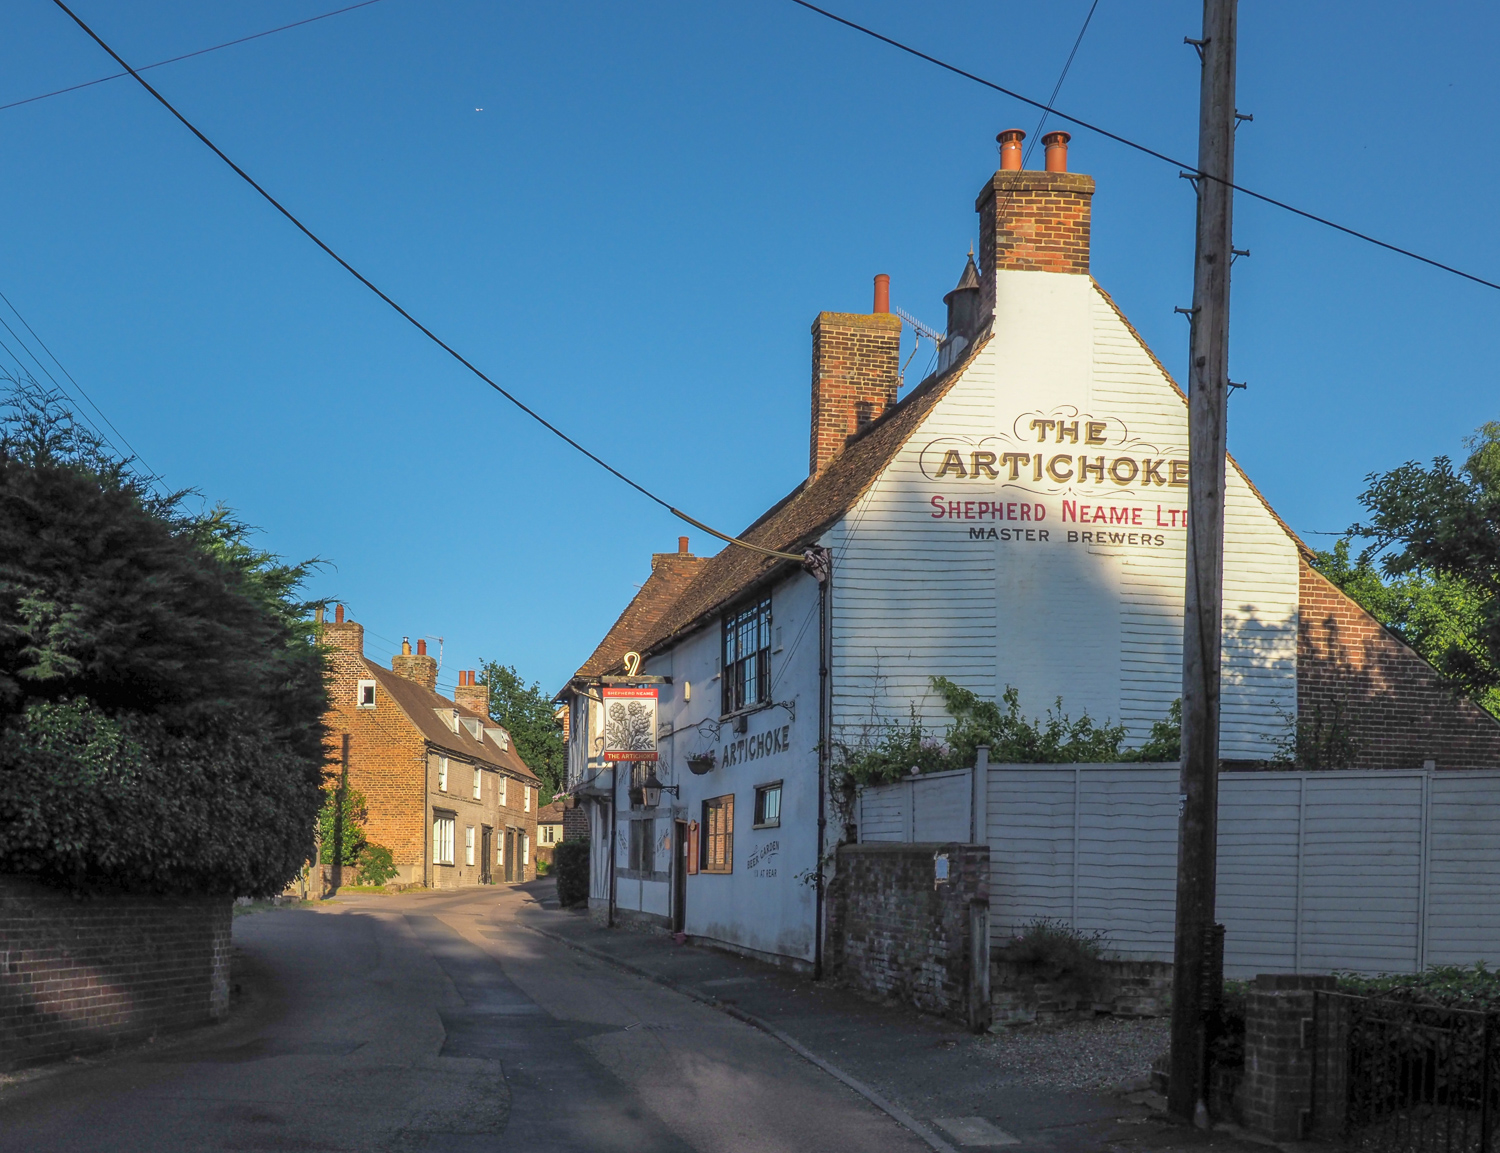 Why walk to Chartham? It's worth it just to walk into The Artichoke.